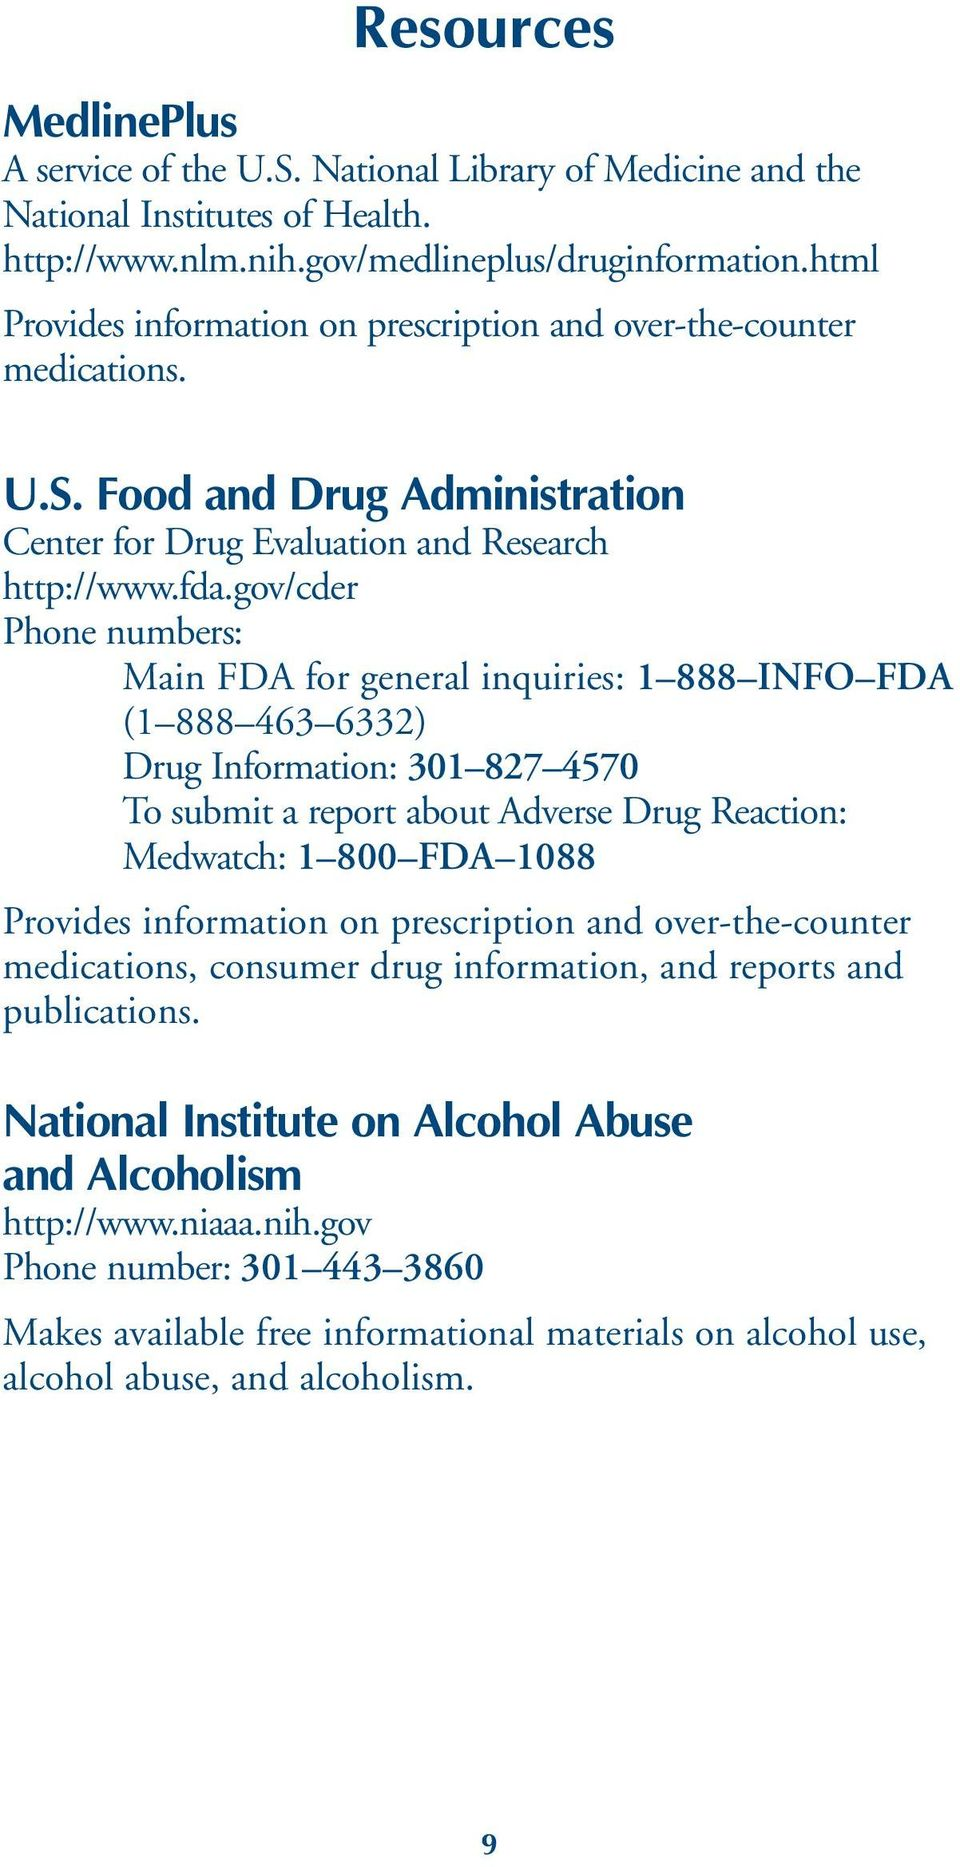 gov/cder Phone numbers: Main FDA for general inquiries: 1 888 INFO FDA (1 888 463 6332) Drug Information: 301 827 4570 To submit a report about Adverse Drug Reaction: Medwatch: 1 800 FDA 1088